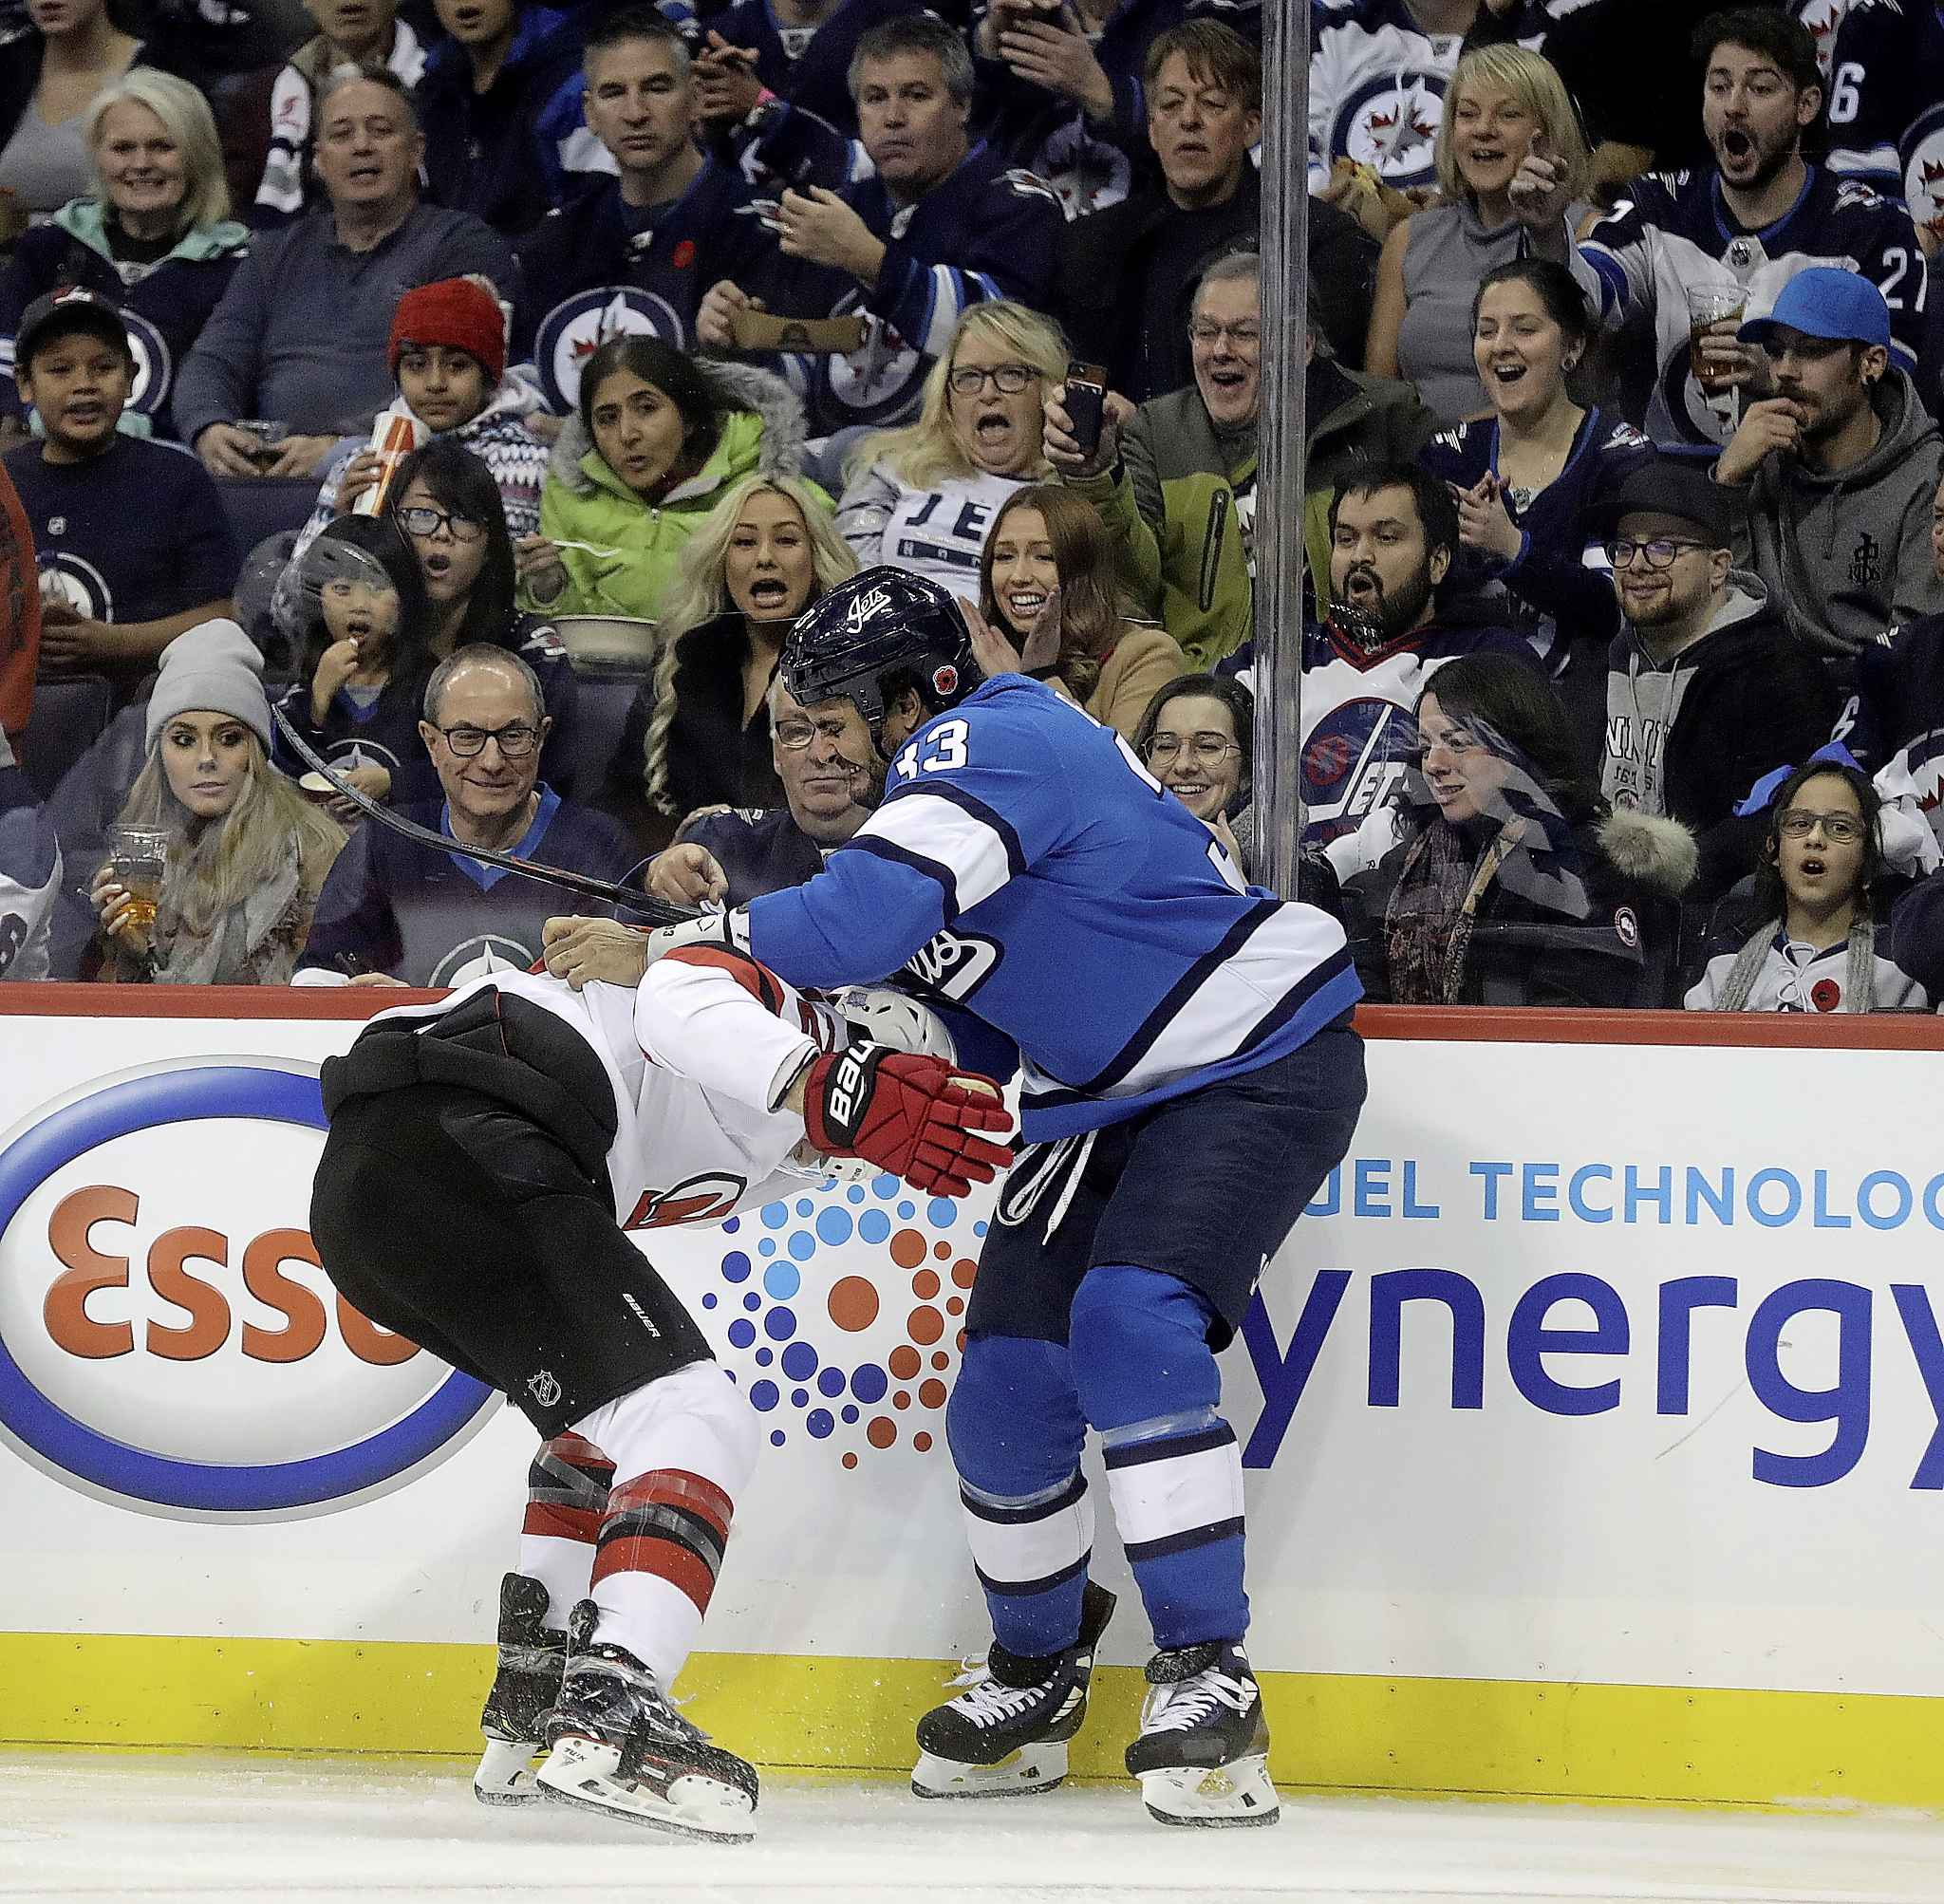 There have been many nights this year when the Jets could have used Dustin Byfuglien's ability to handle the physical side of NHL hockey.